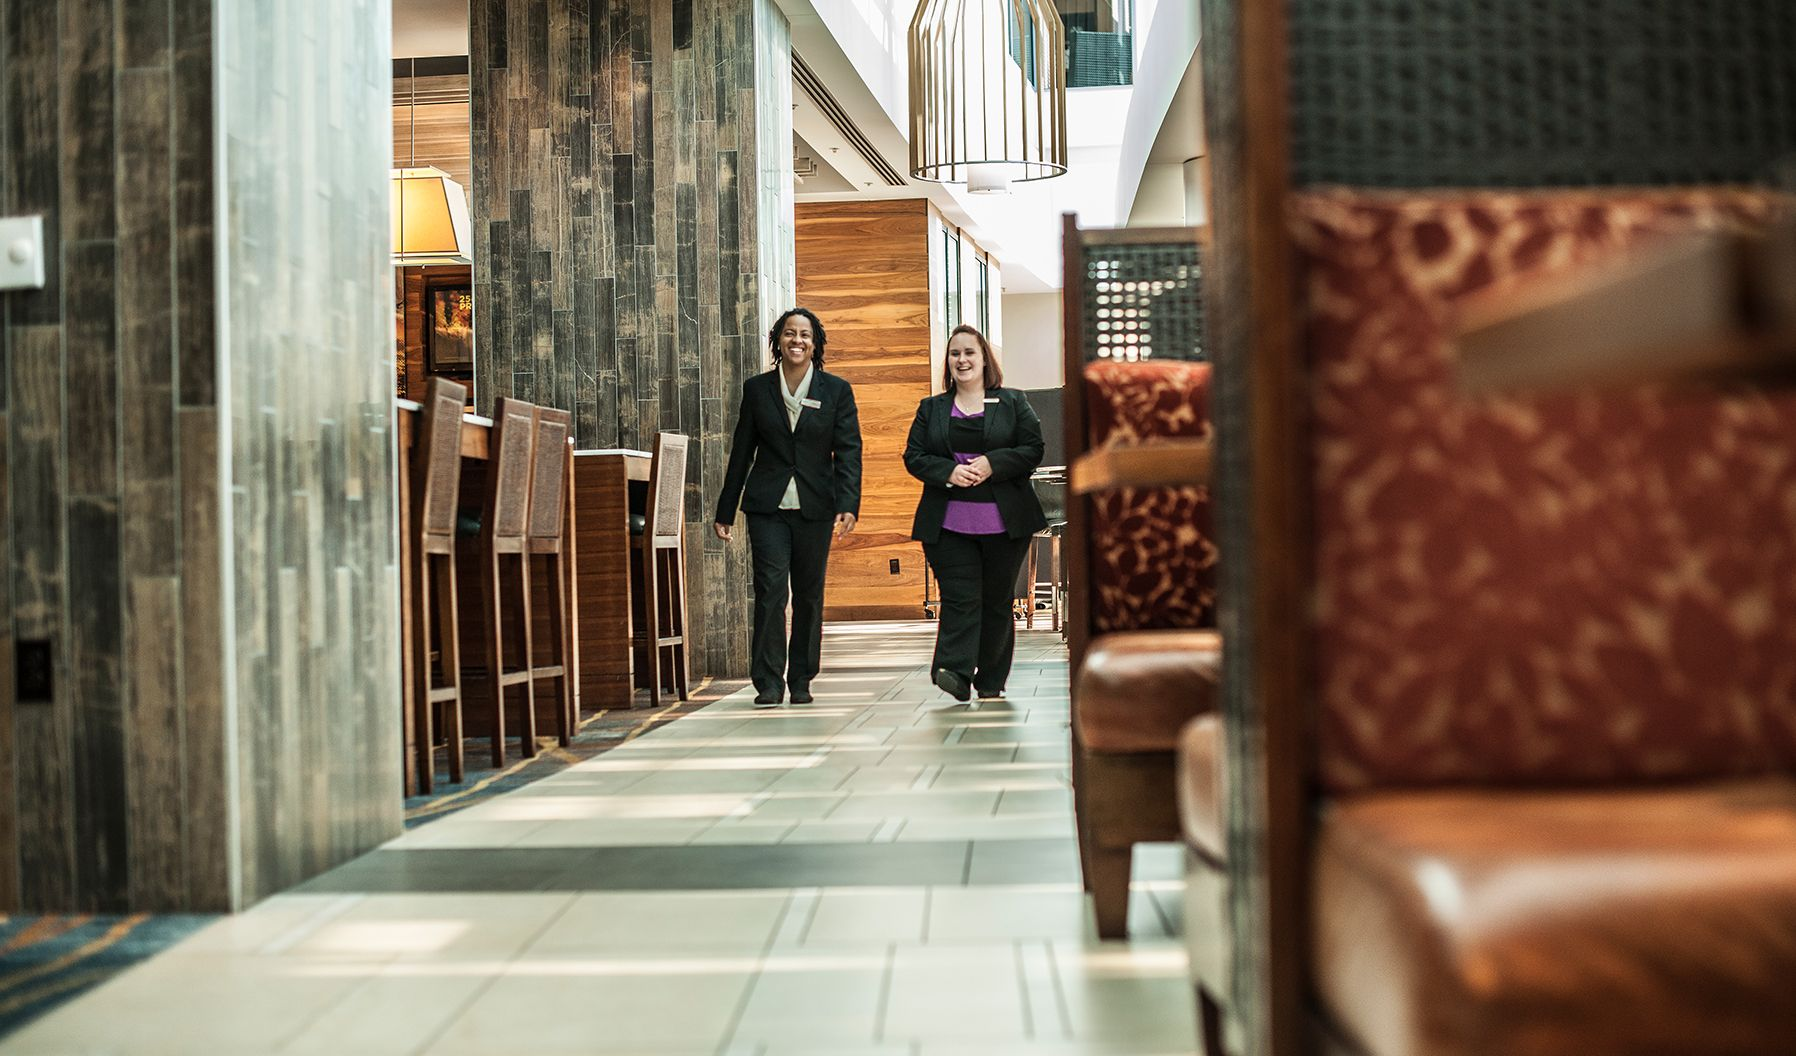 Two female members of staff walking through a White Lodging managed hotel.